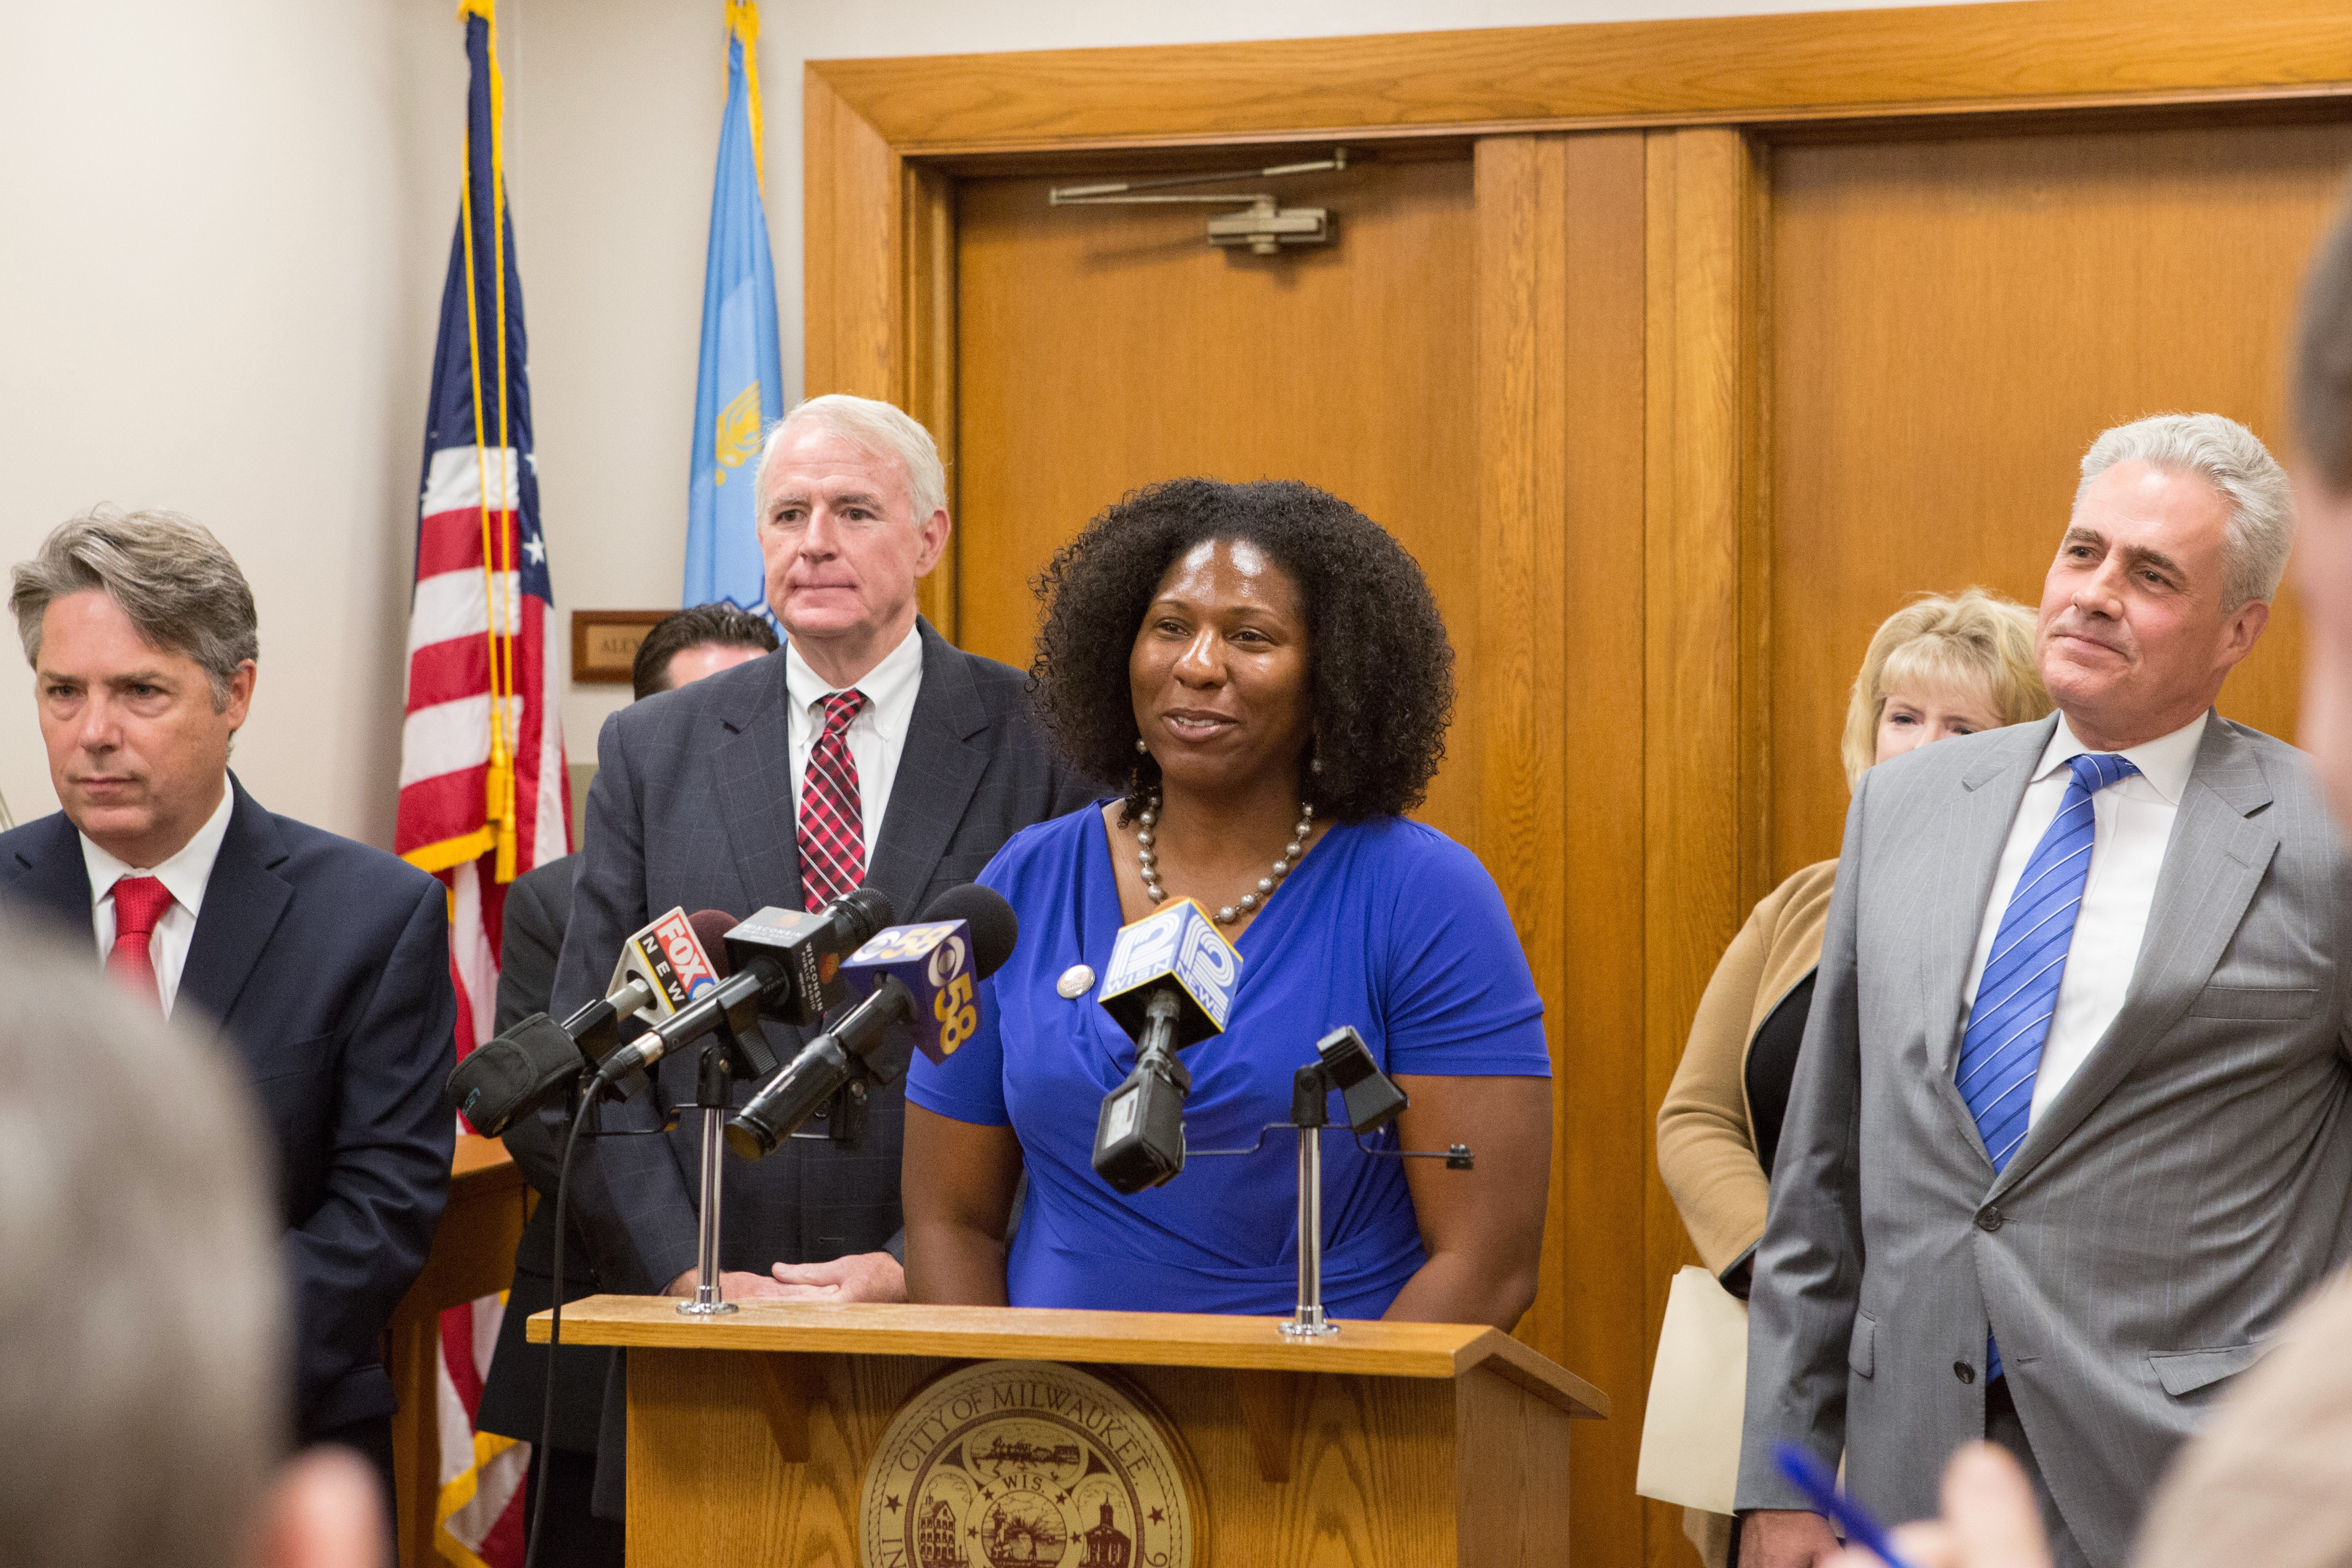 Keisha Krumm speaks at a news conference at City Hall in 2015 at which Nationstar Mortgage announced it would contribute $30.5 million to help Sherman Park homeowners recover from the foreclosure crisis. Photo courtesy of Common Ground.